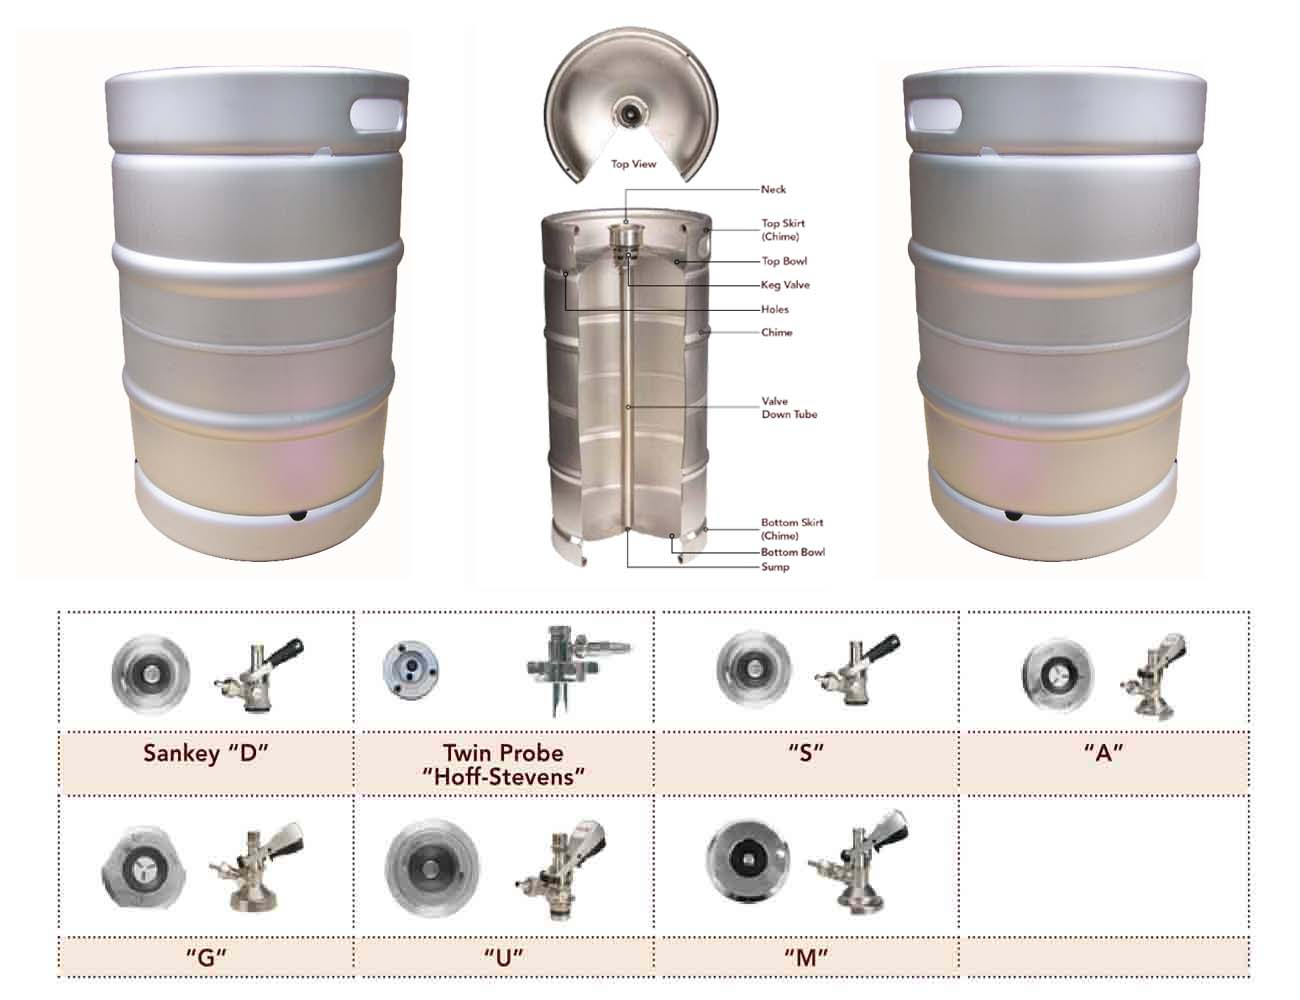 <b>USA standard 1/2 bbl stainless steel beer keg</b>